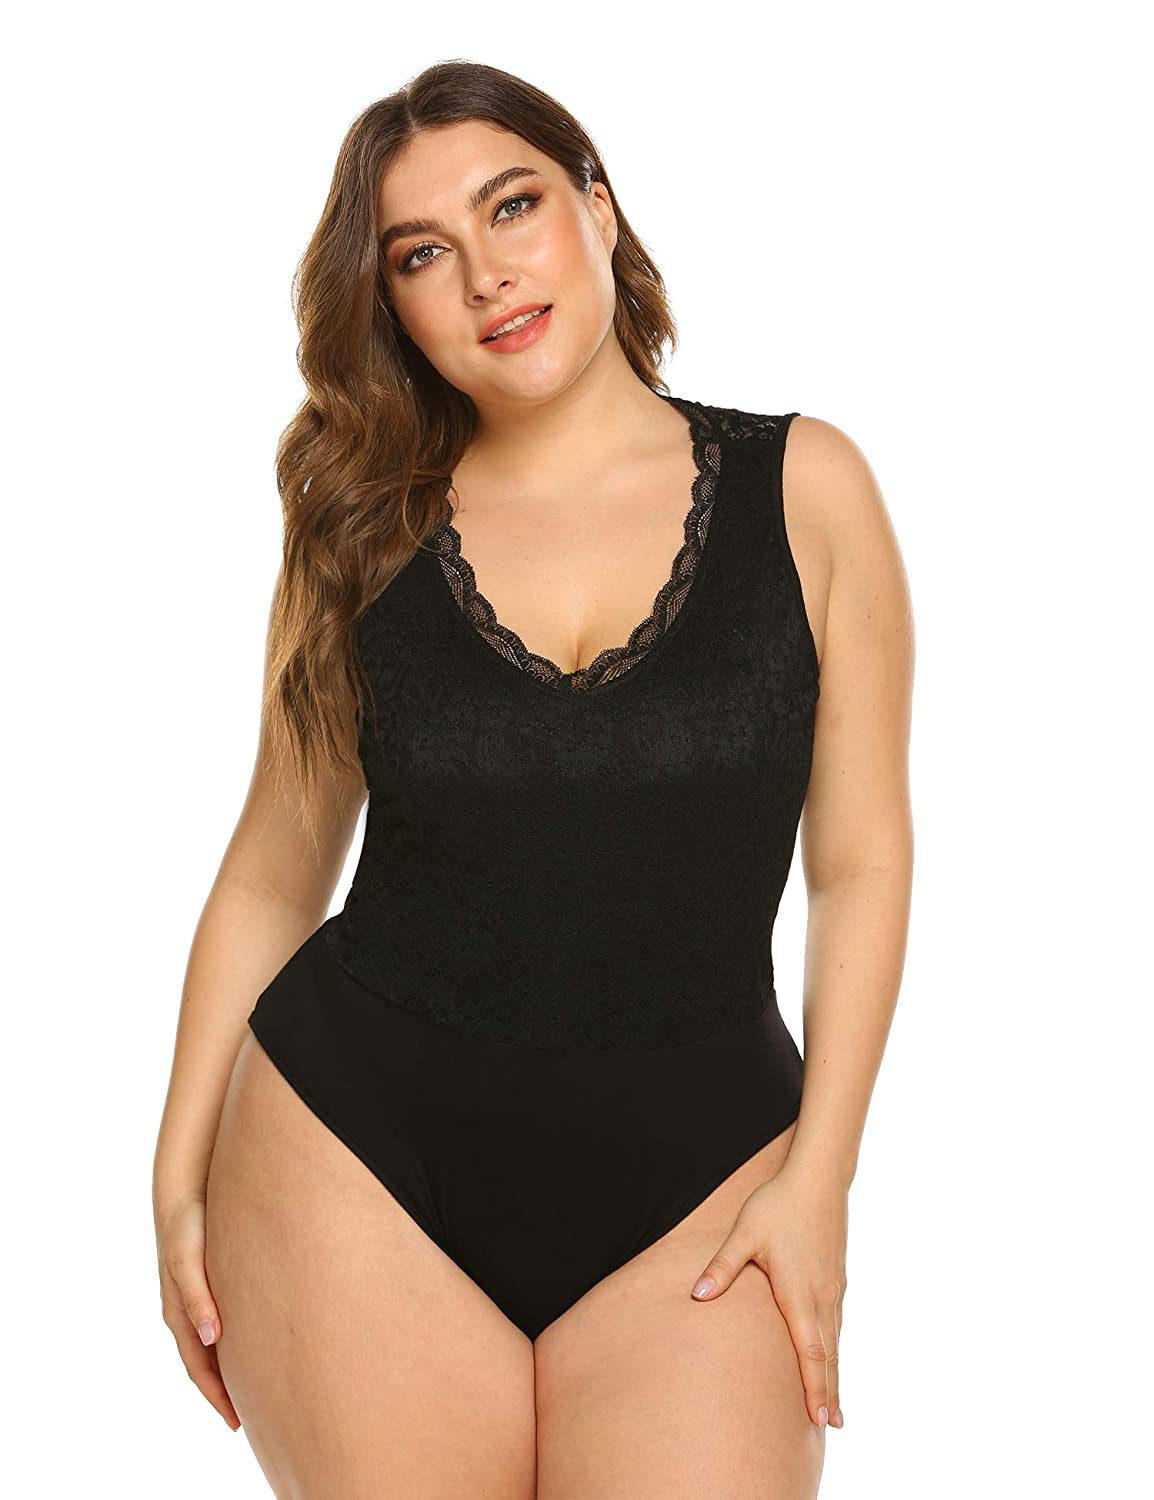 338b6650f29 IN'VOLAND Women Plus Size Lace Bodysuit Long Sleeve/Sleeveless Sexy Bodycon  Stretchy Party Clubwear Bodysuits Leotards Tops at Amazon Women's Clothing  store ...